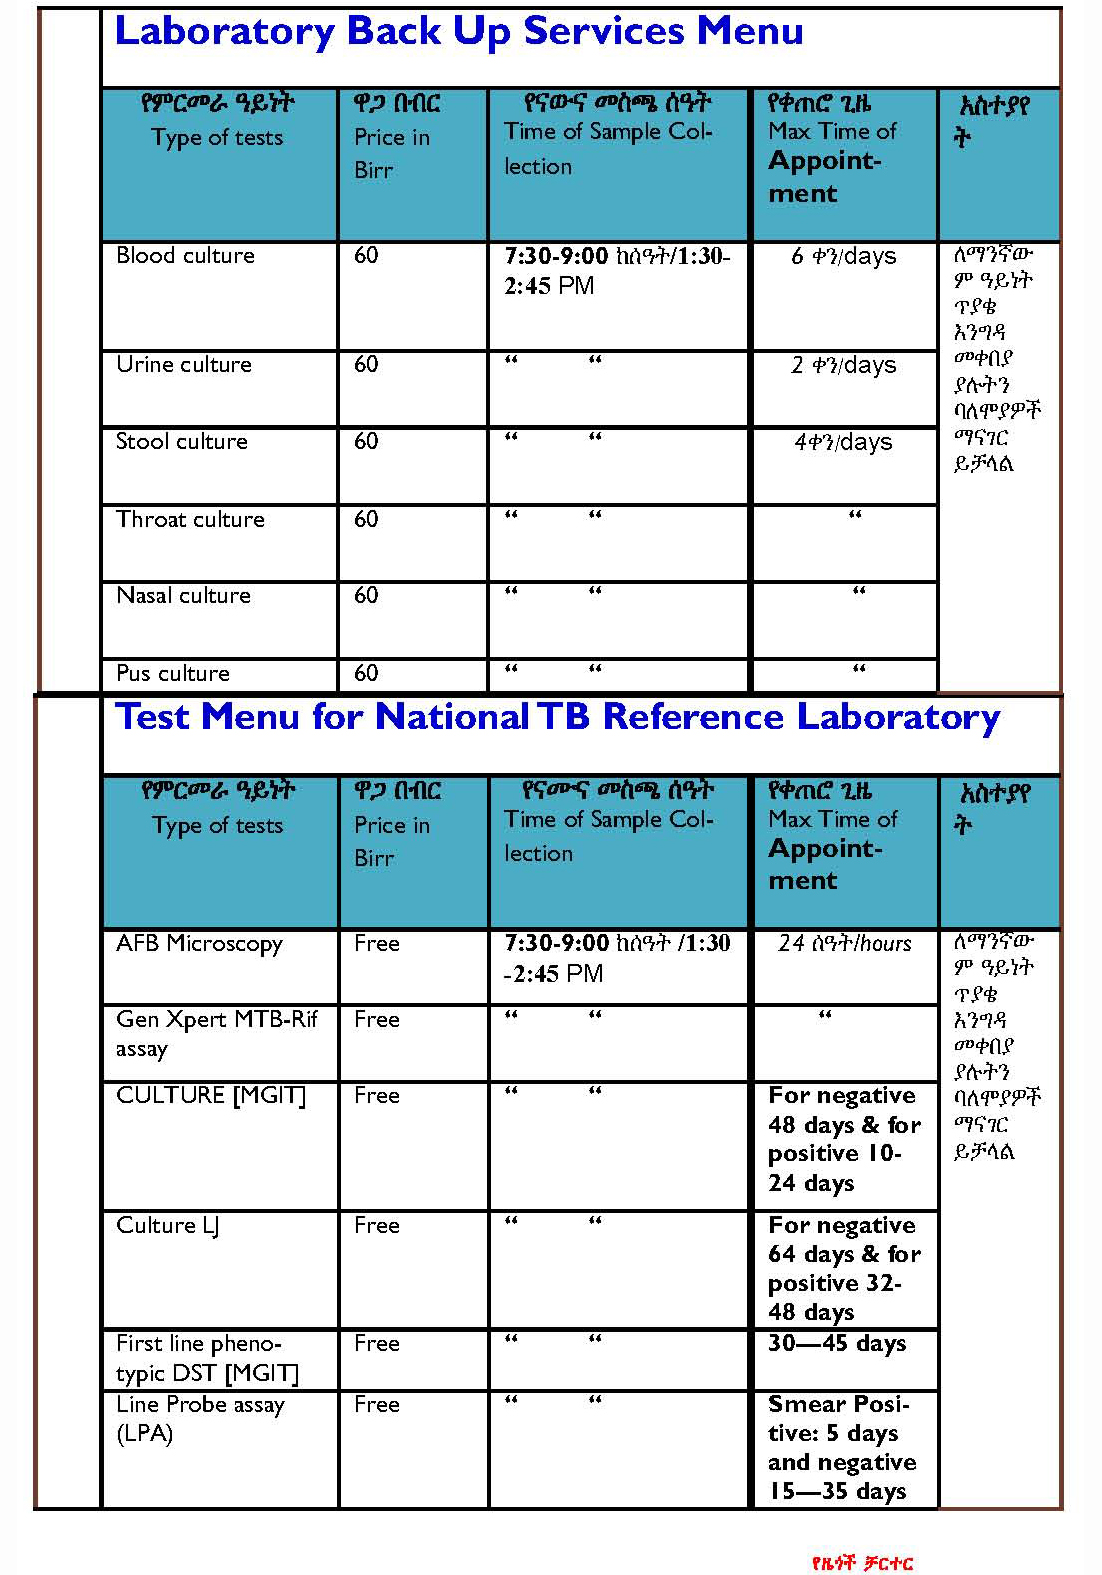 Back Up, National TB Reference and Immunohematology Laboratories Page 1